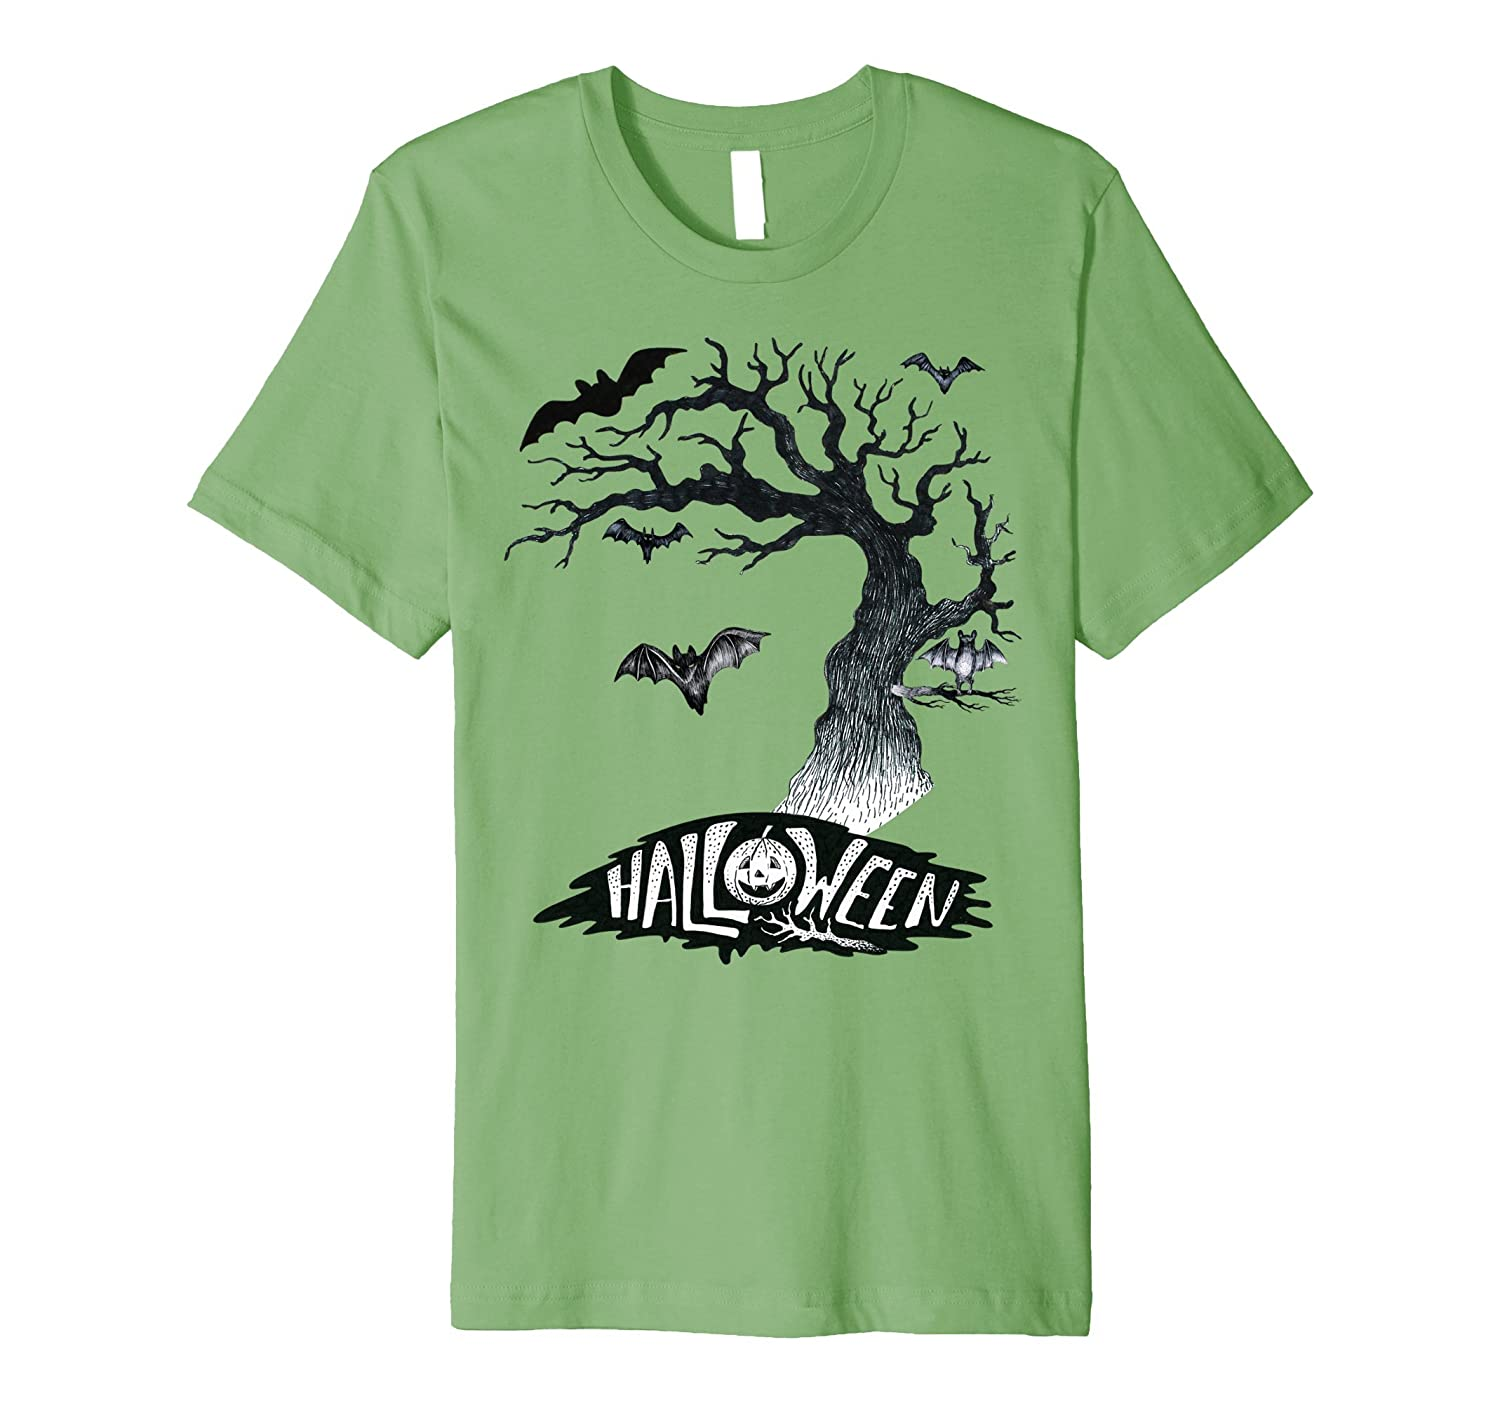 Happy Halloween Bats in Haunted Tree Costume T-Shirt